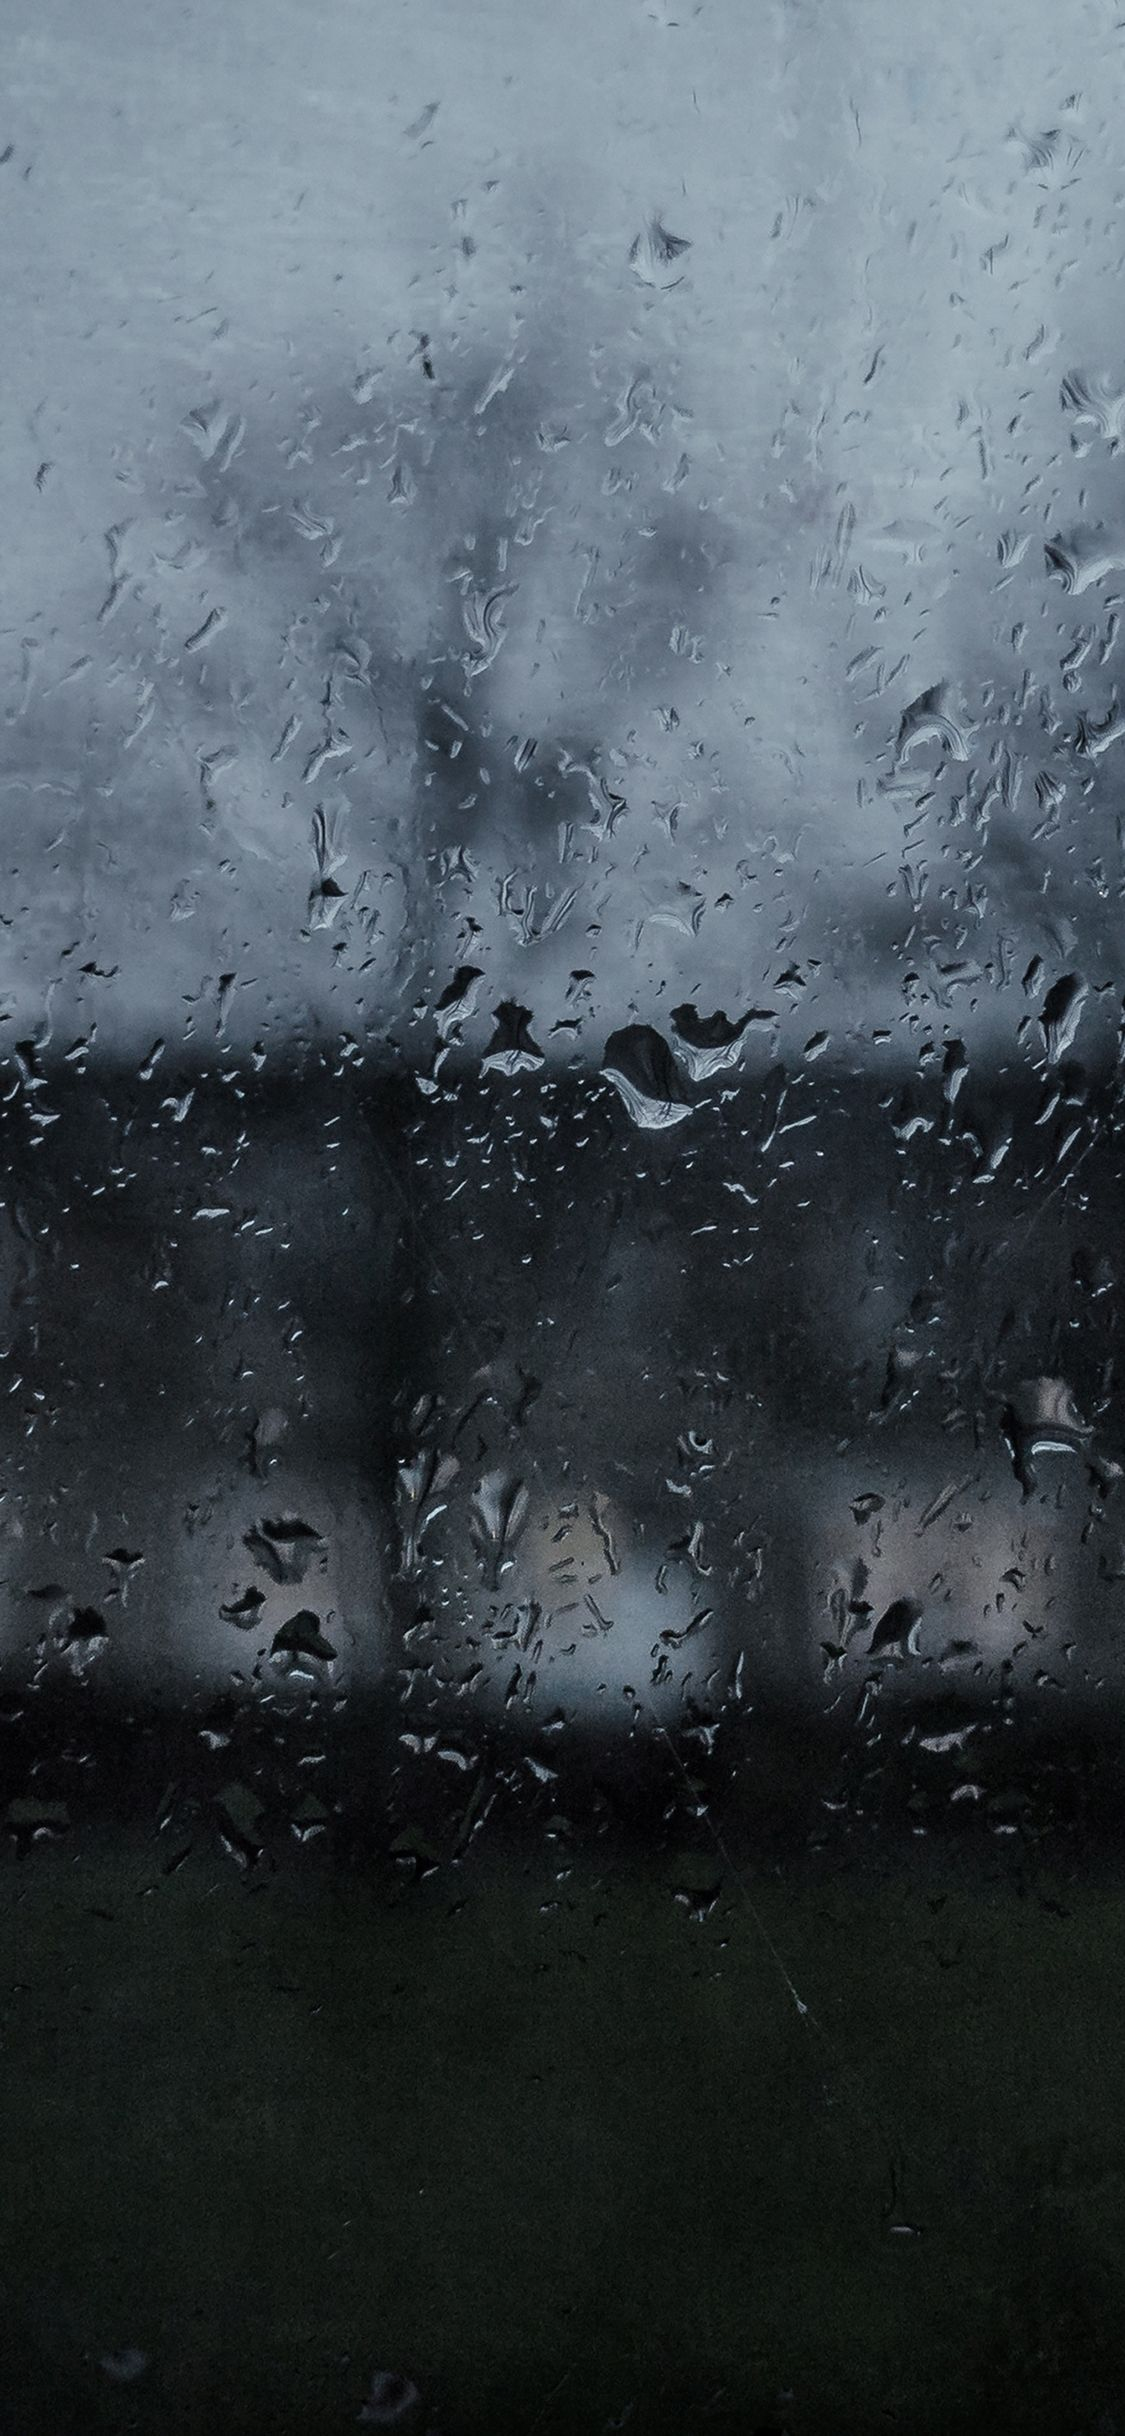 IPhoneX Wallpaper Mi63 Good To Stay Home Dark Rainy Window